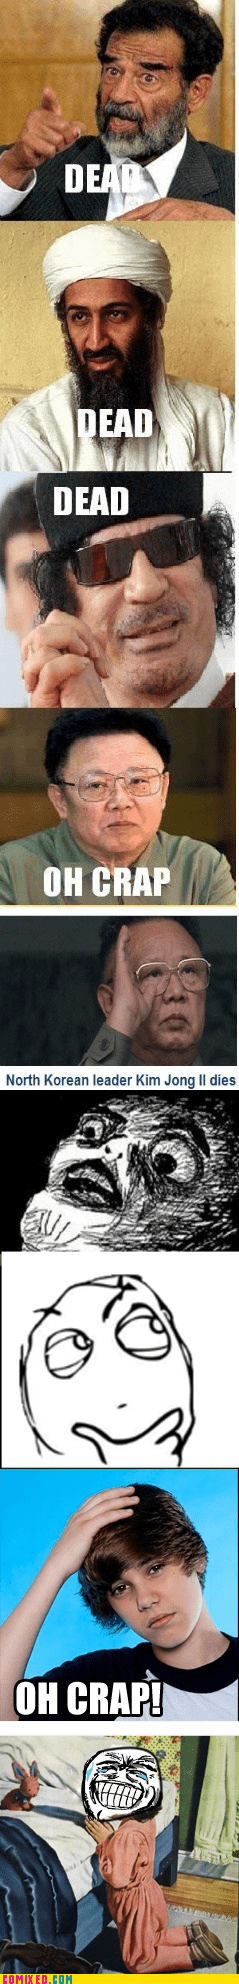 best of week dead justin bieber Kim Jong-Il oh crap the internets - 5586182656